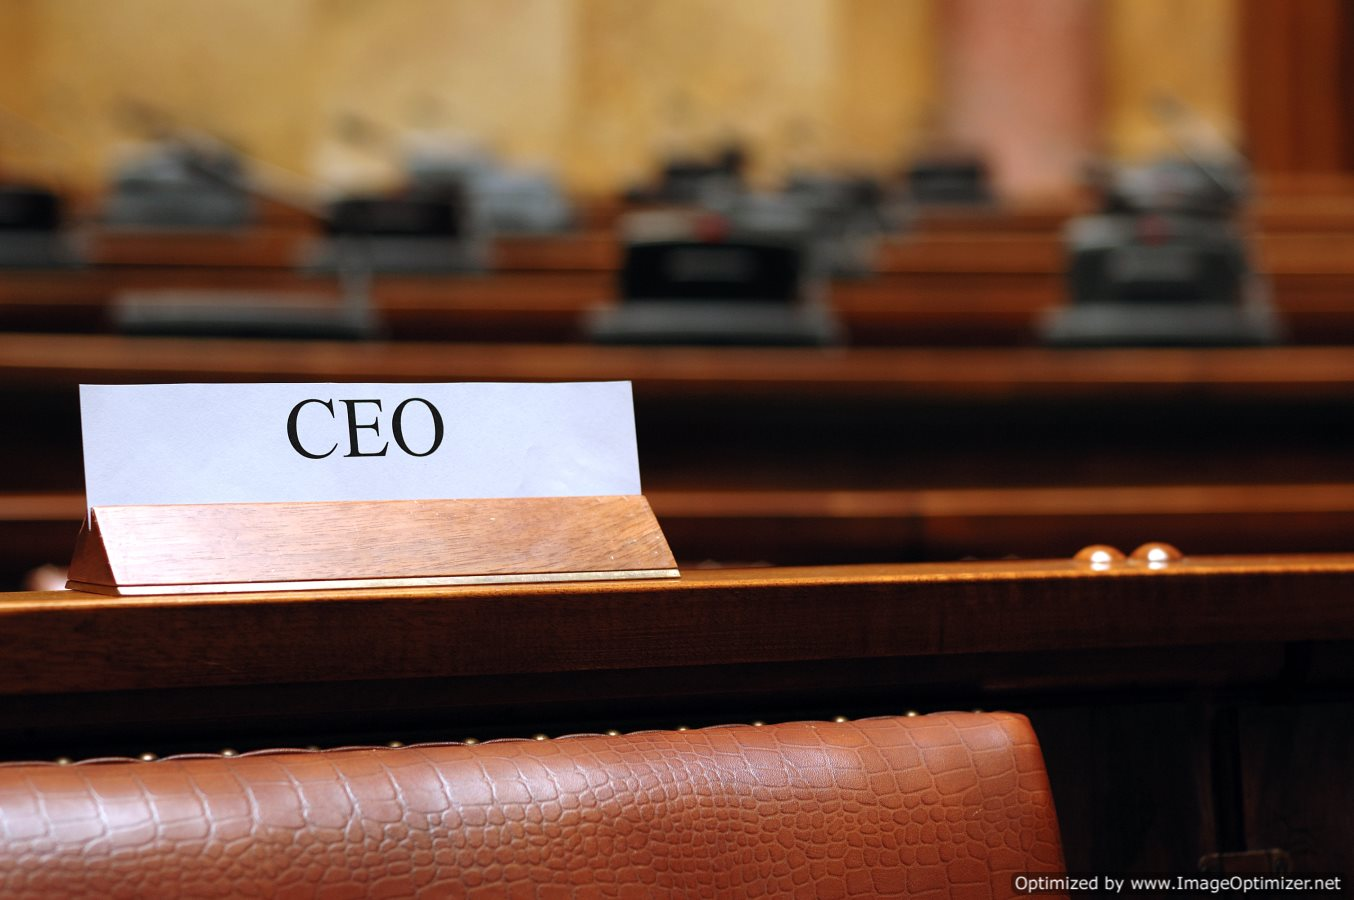 Know Your Role: CEOs Earn 354 Times more than the Average Worker